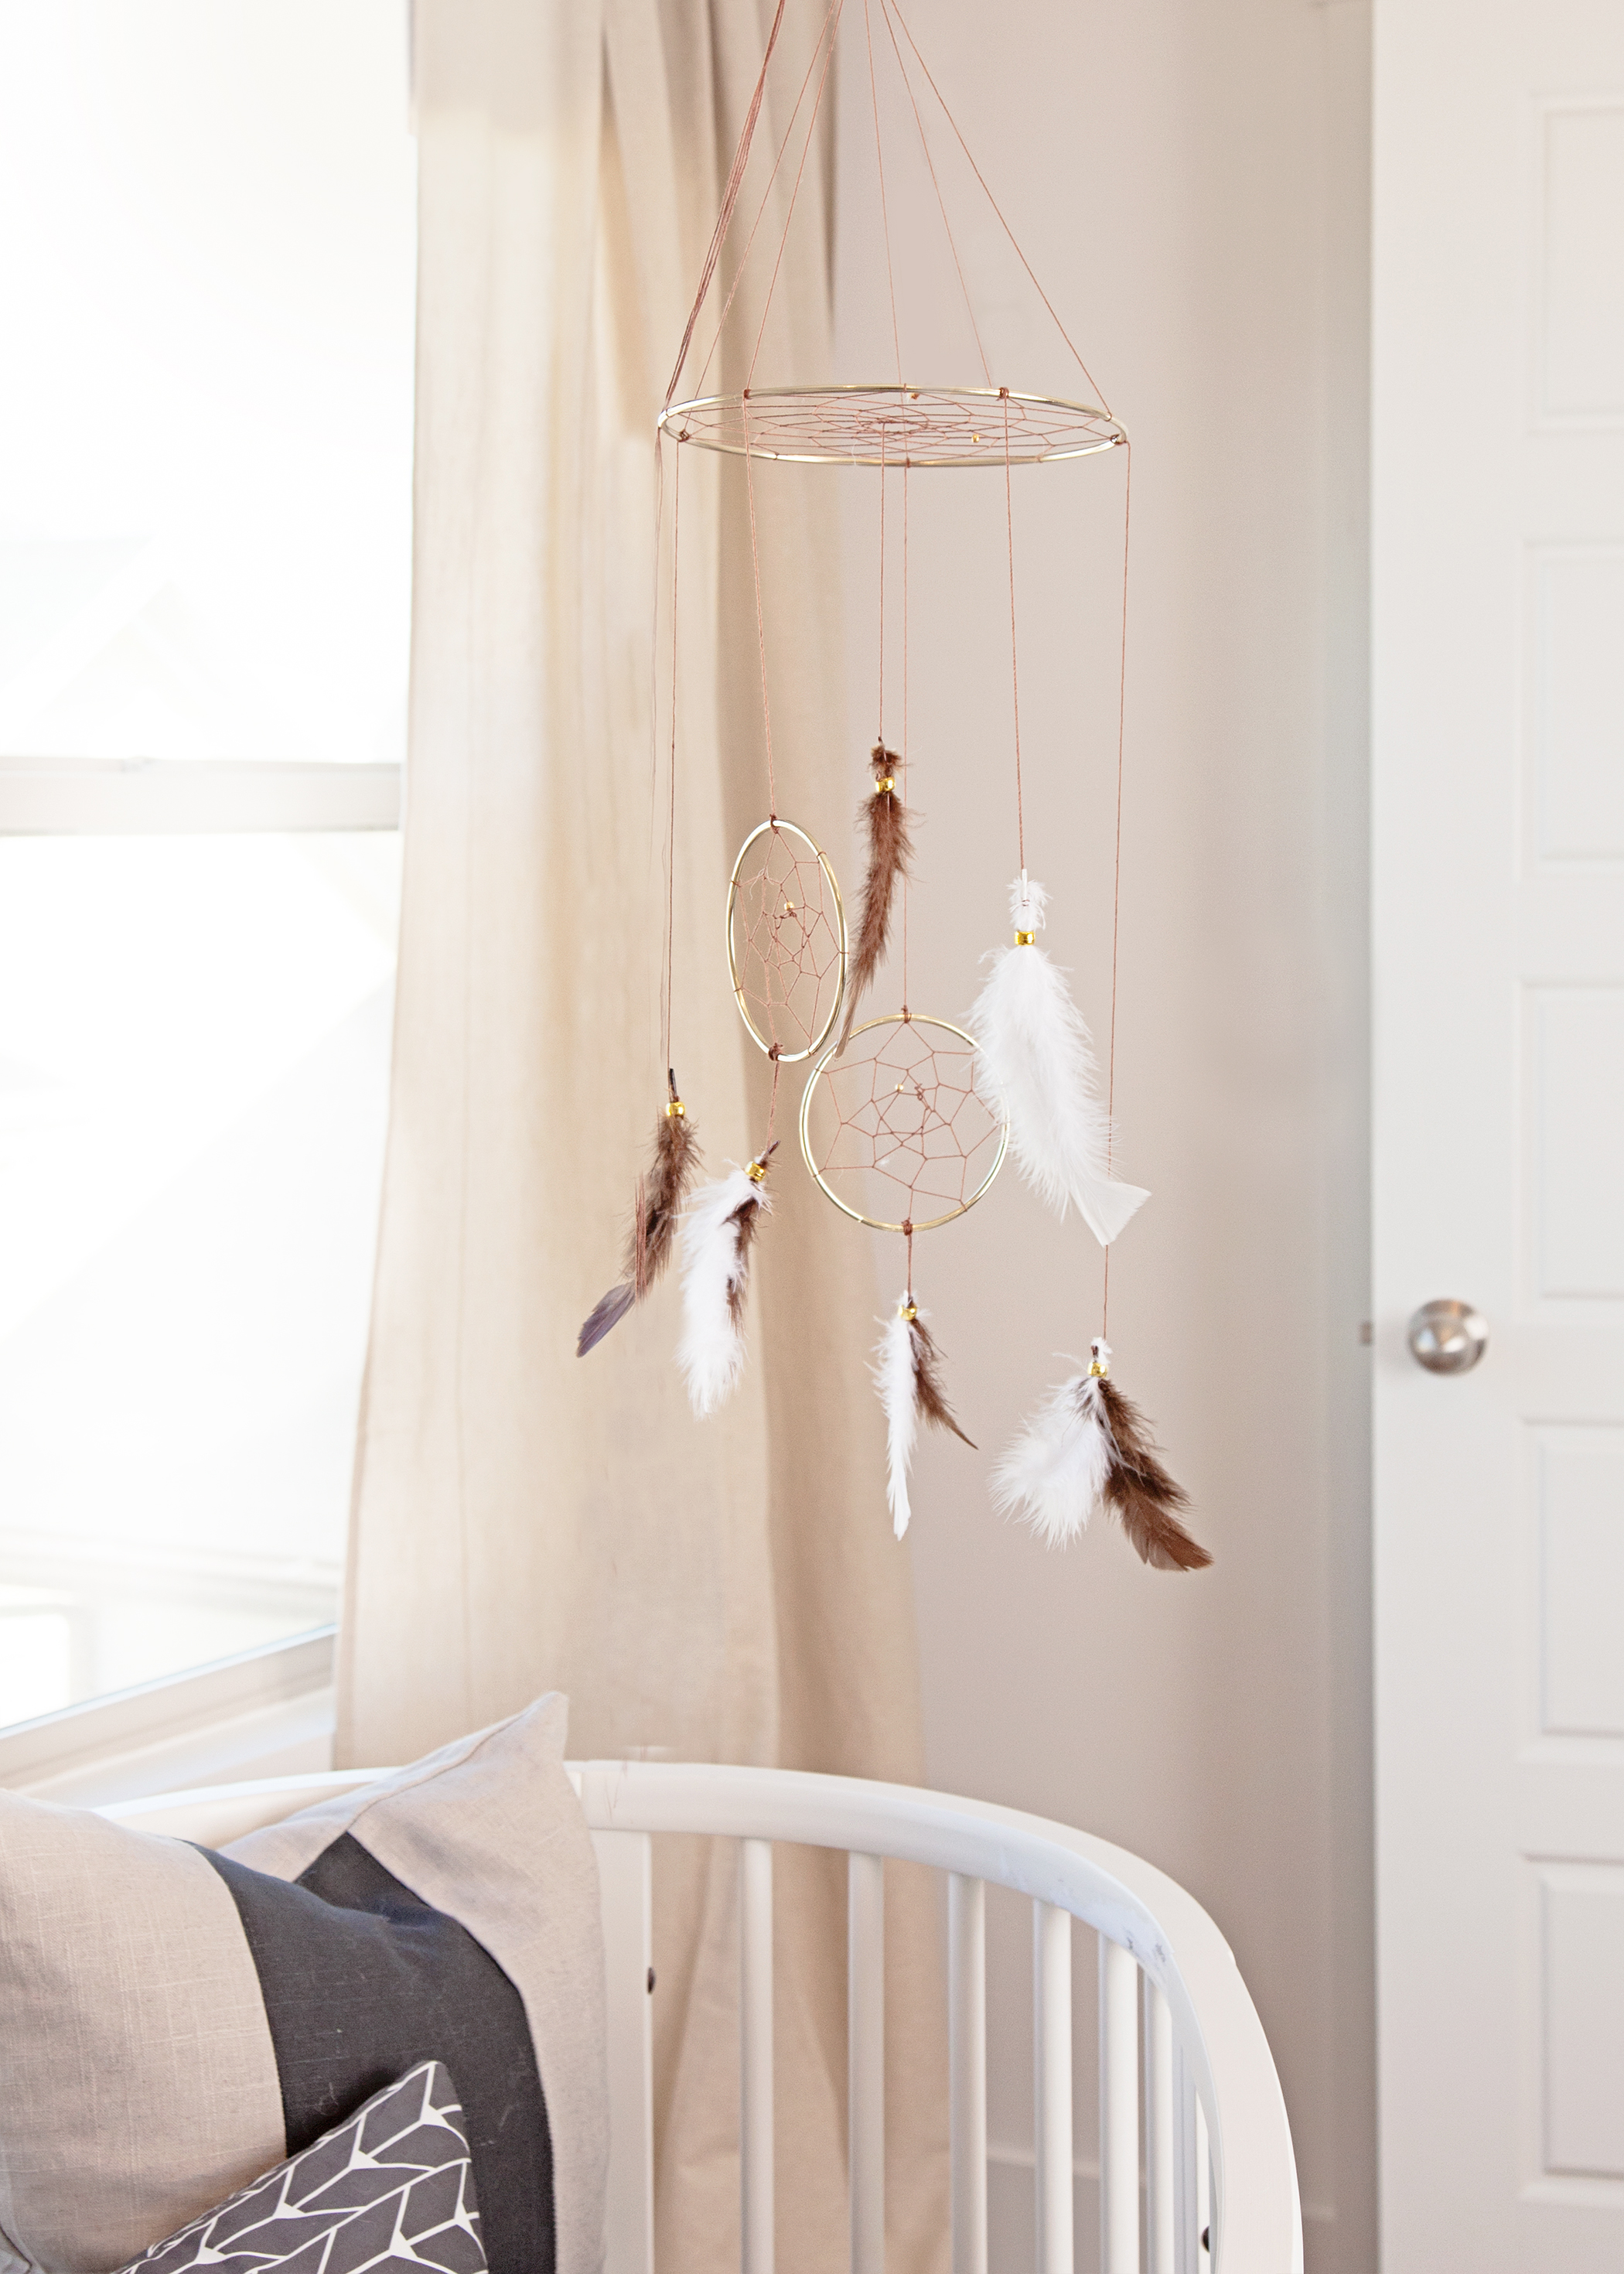 Modern Bohemian Nursery with Dreamcatcher Mobile - Project Nursery